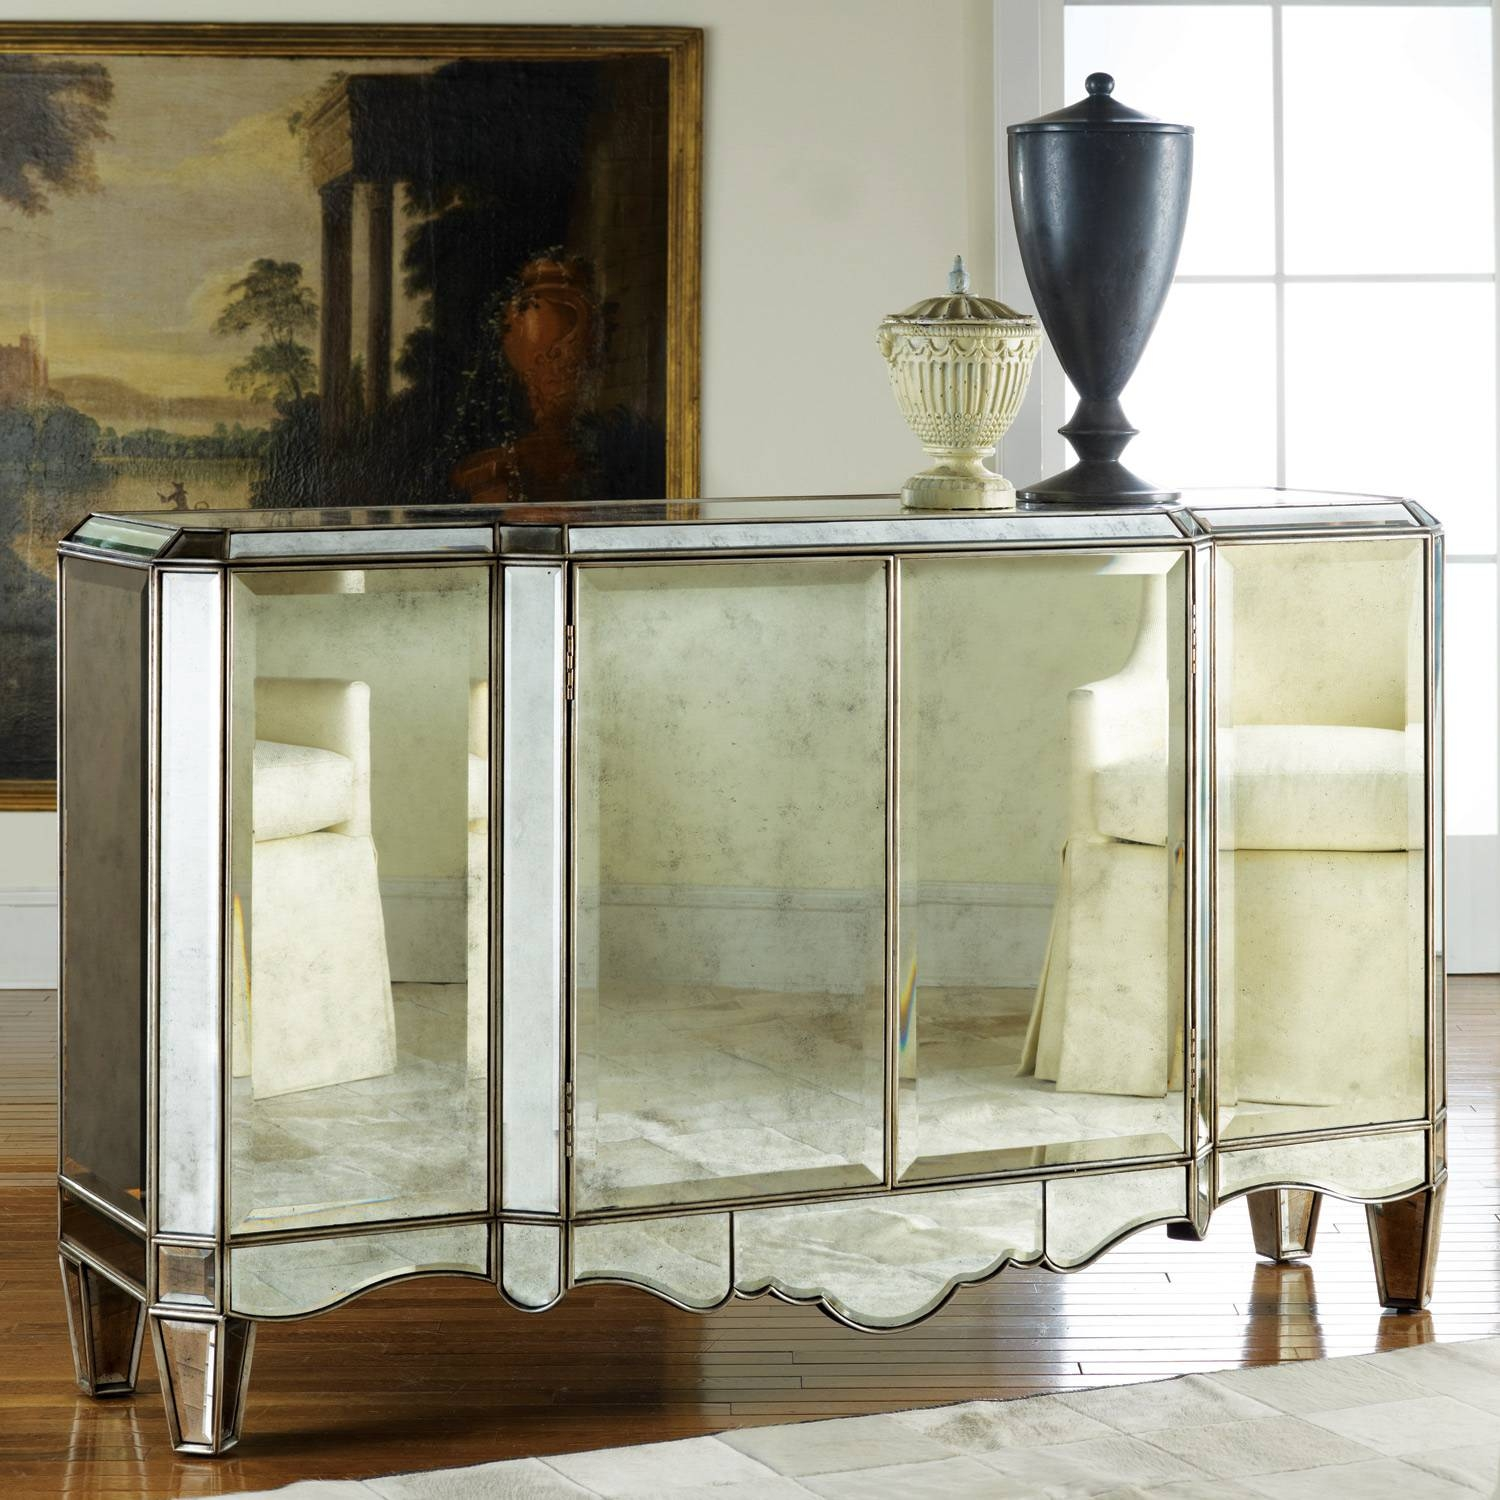 Dining Room: Inspiring Interior Storage Design Ideas With Exciting in Small Mirrored Sideboards (Image 4 of 30)